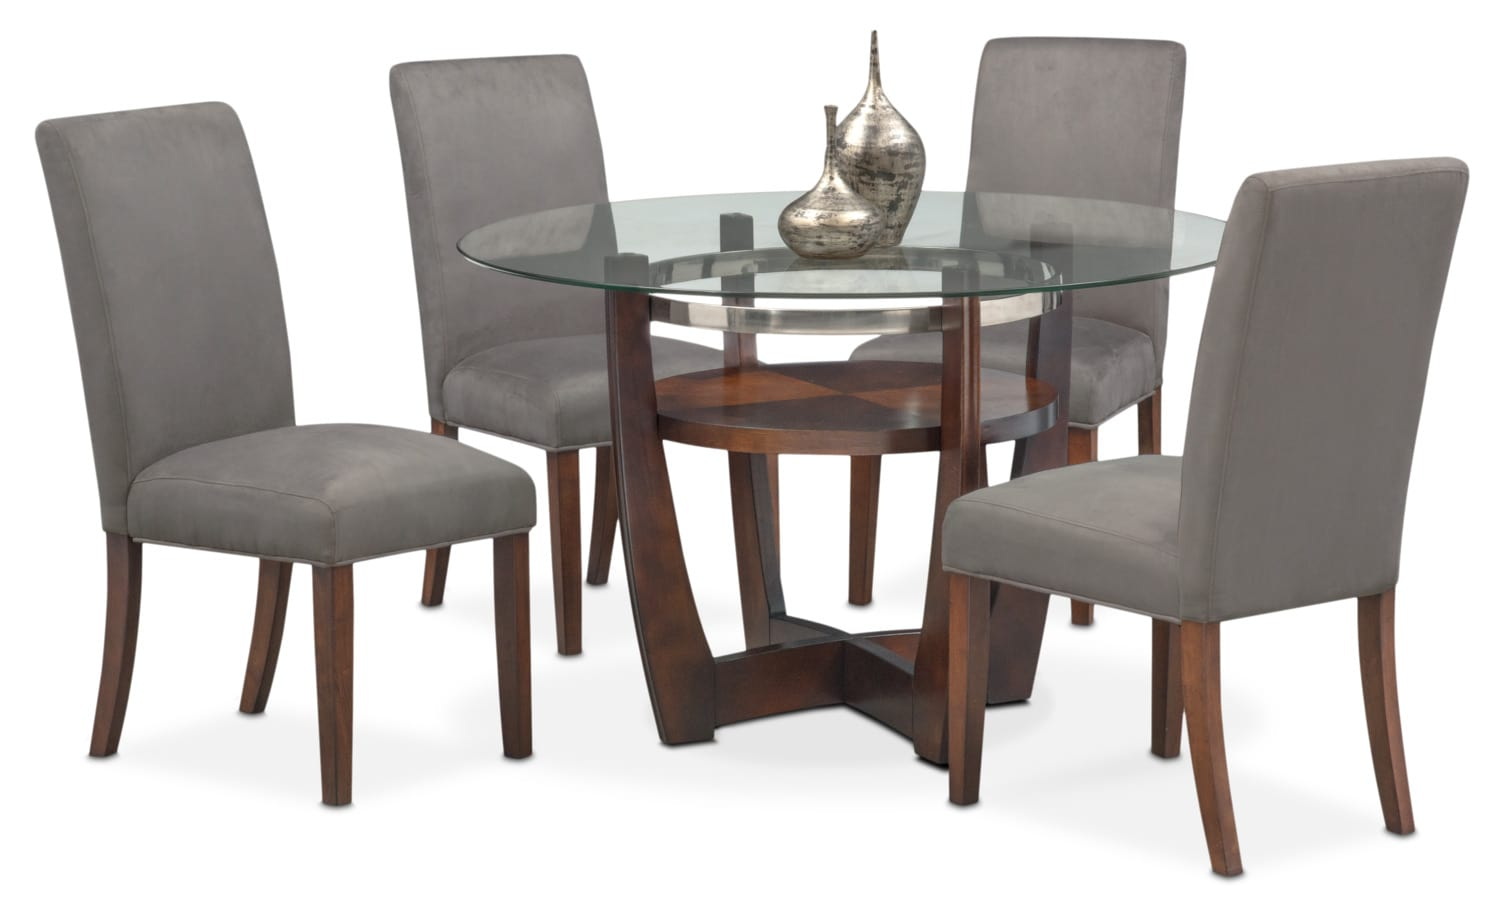 Grey Dining Room Table Sets: Alcove Table And 4 Side Chairs - Gray